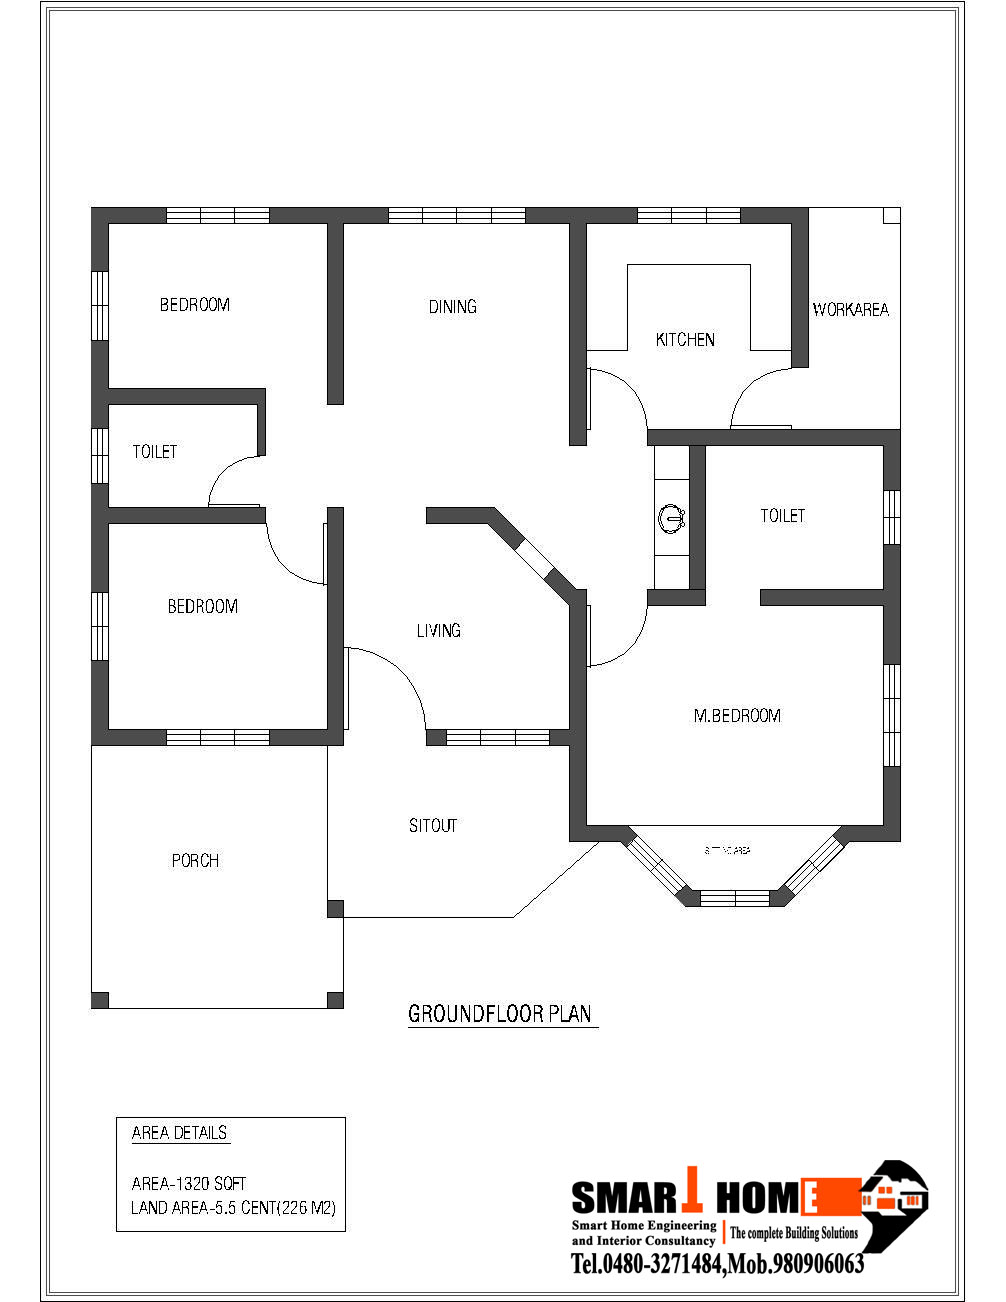 House photos and plans may 2012 for Floor plans for my house